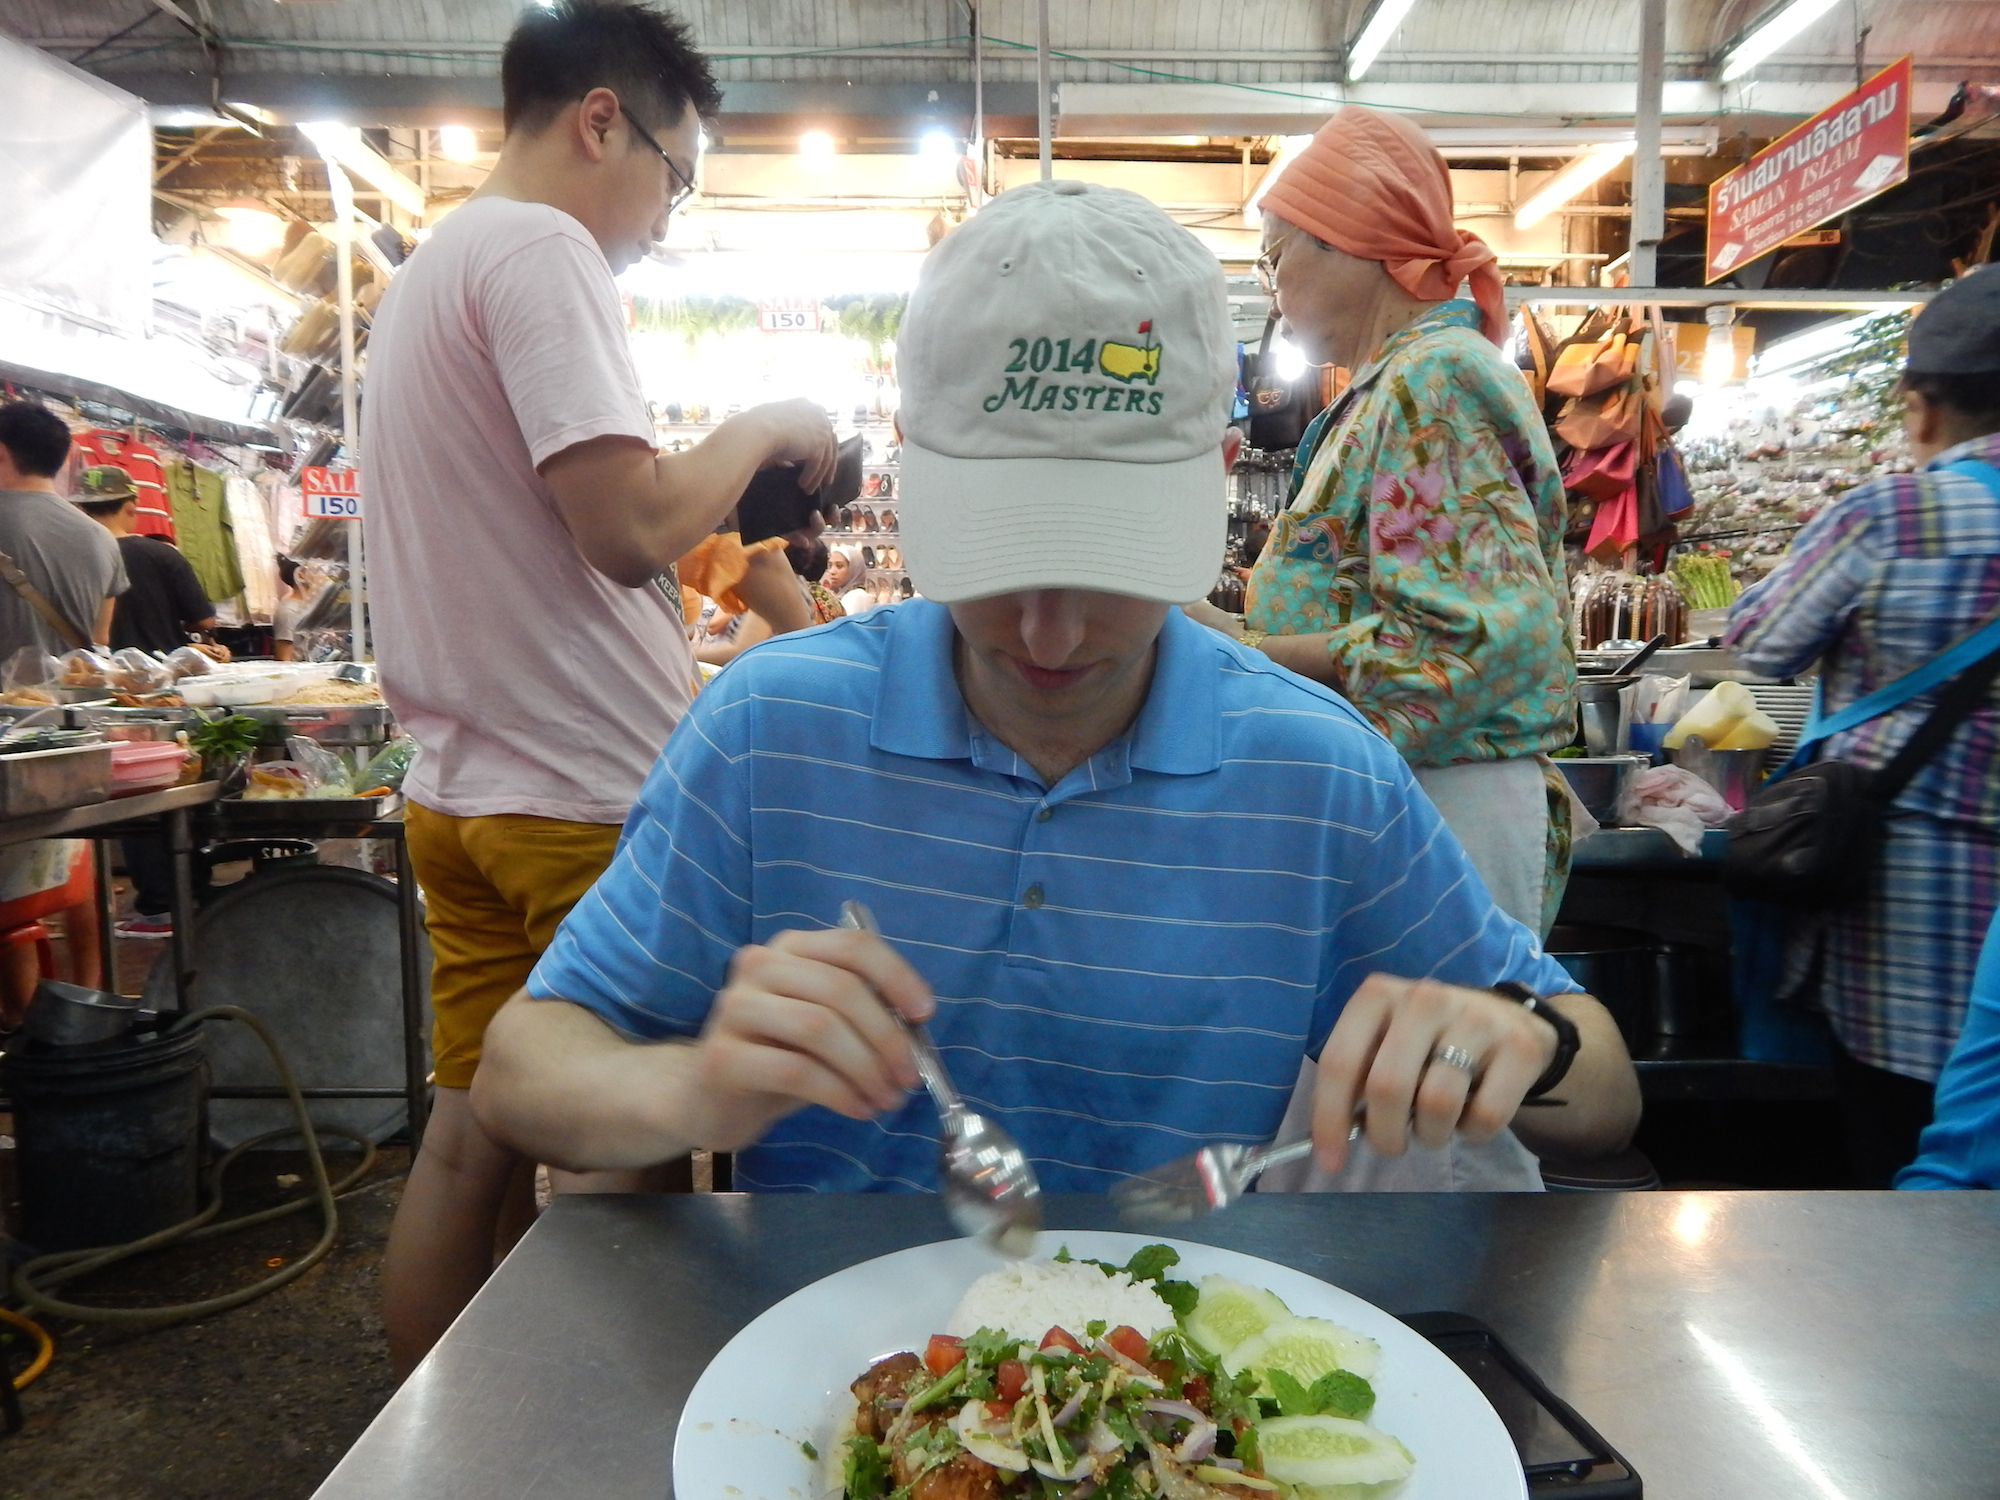 Note that in Thailand it is customary to eat with a spoon in your right hand and a fork in your left